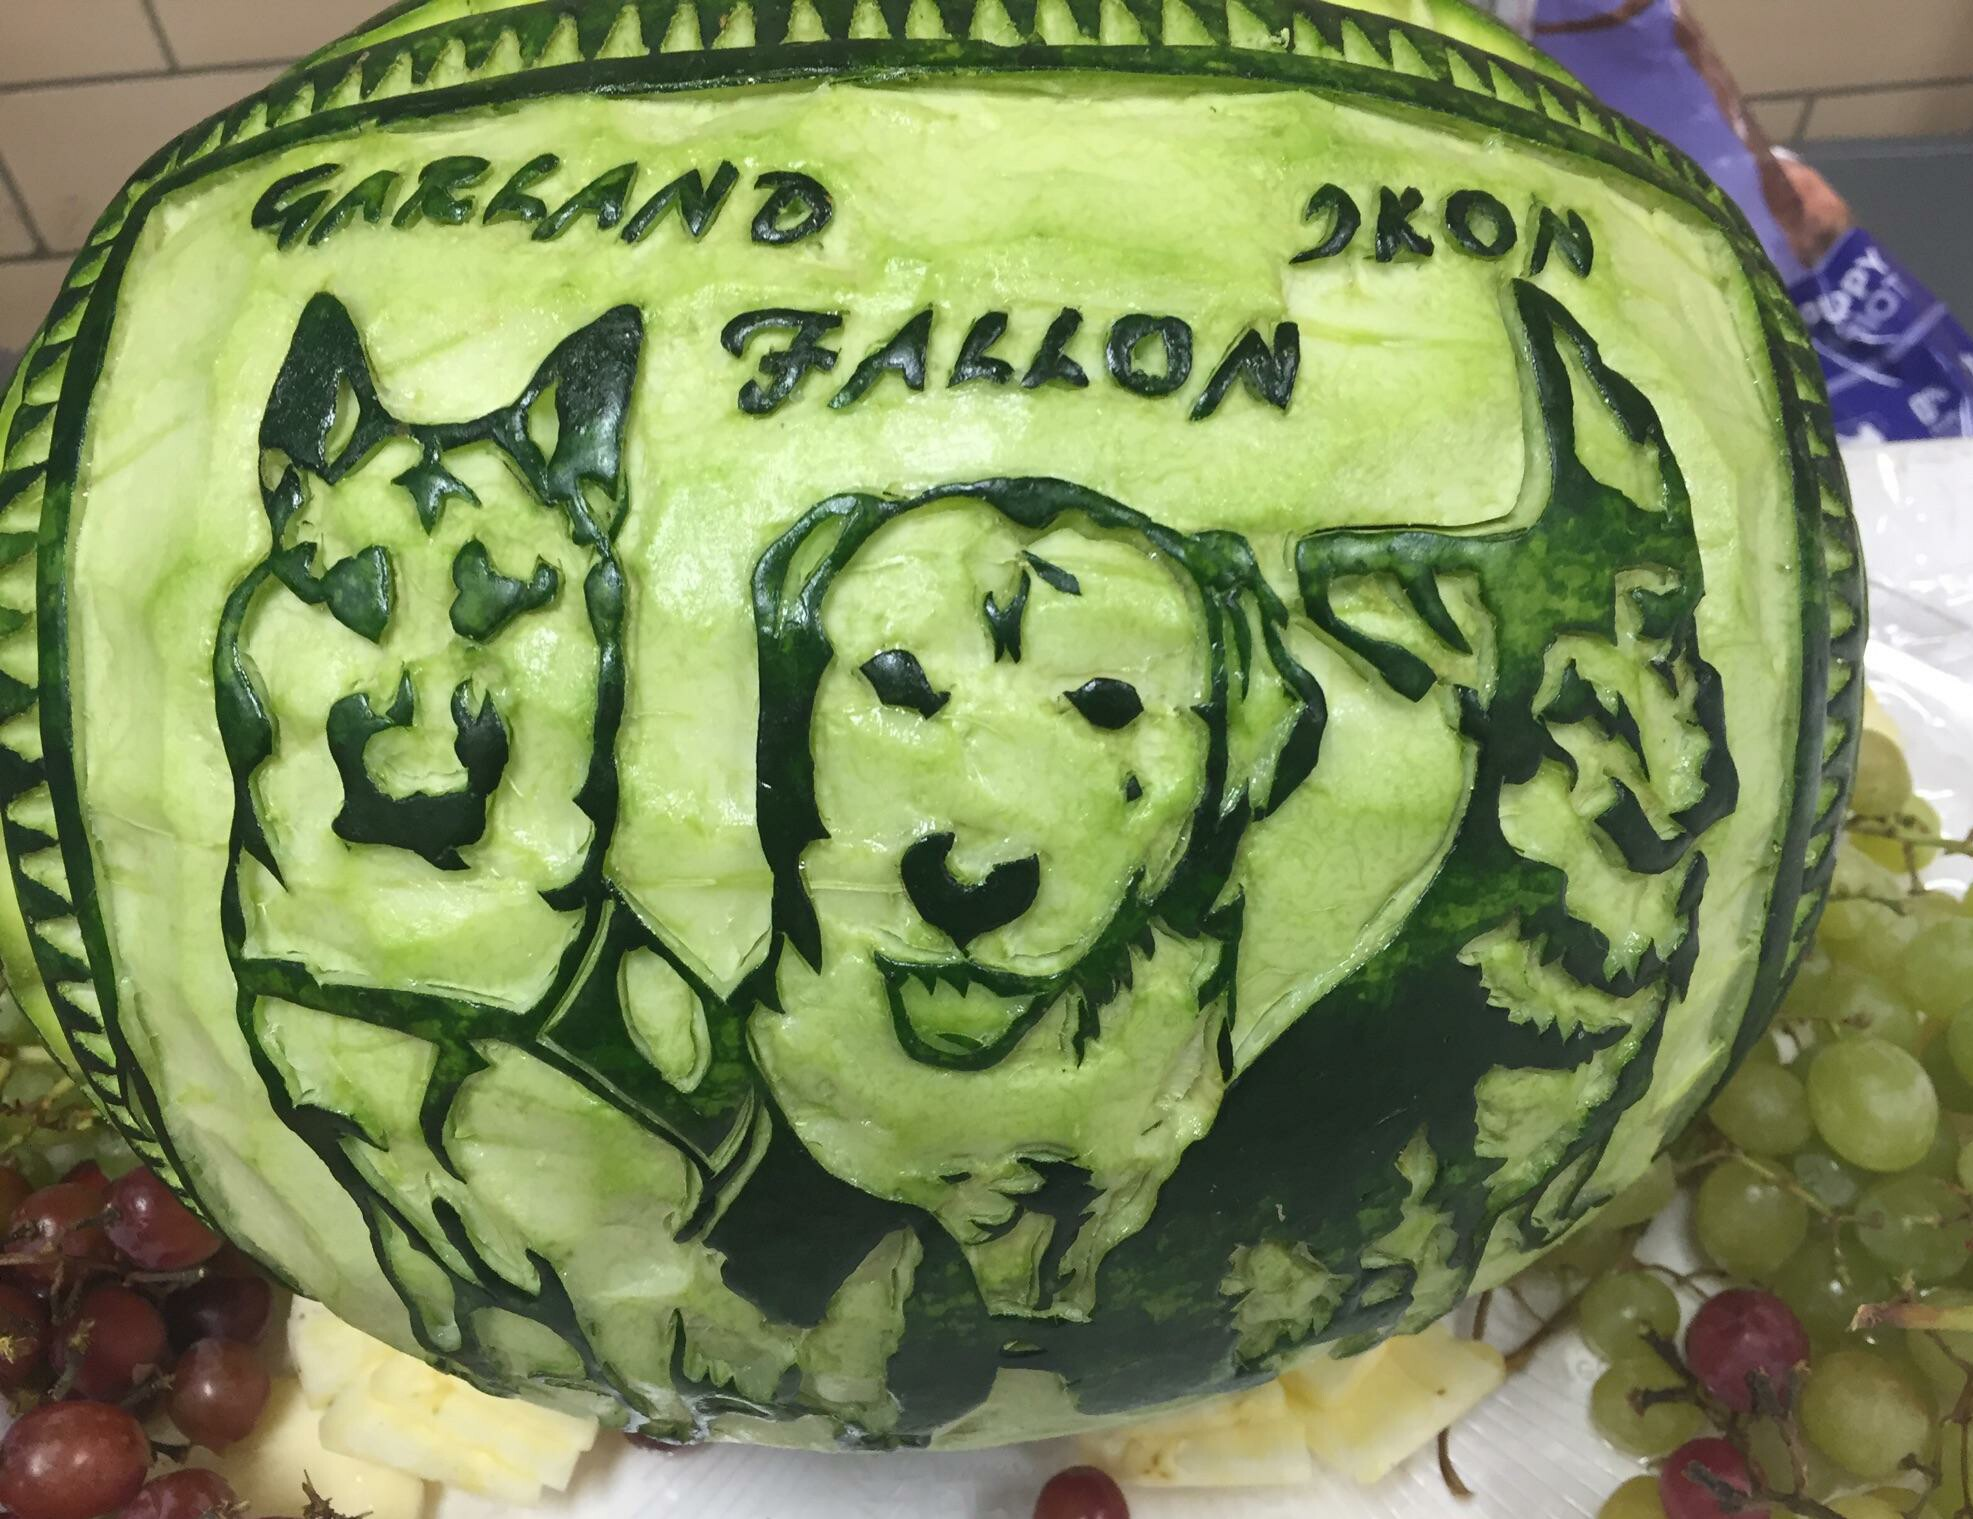 4375f12d22ed05ebfa14_A_carving_for_the_dog_graduation_of_Fallon_and_two_other_dogs.jpg